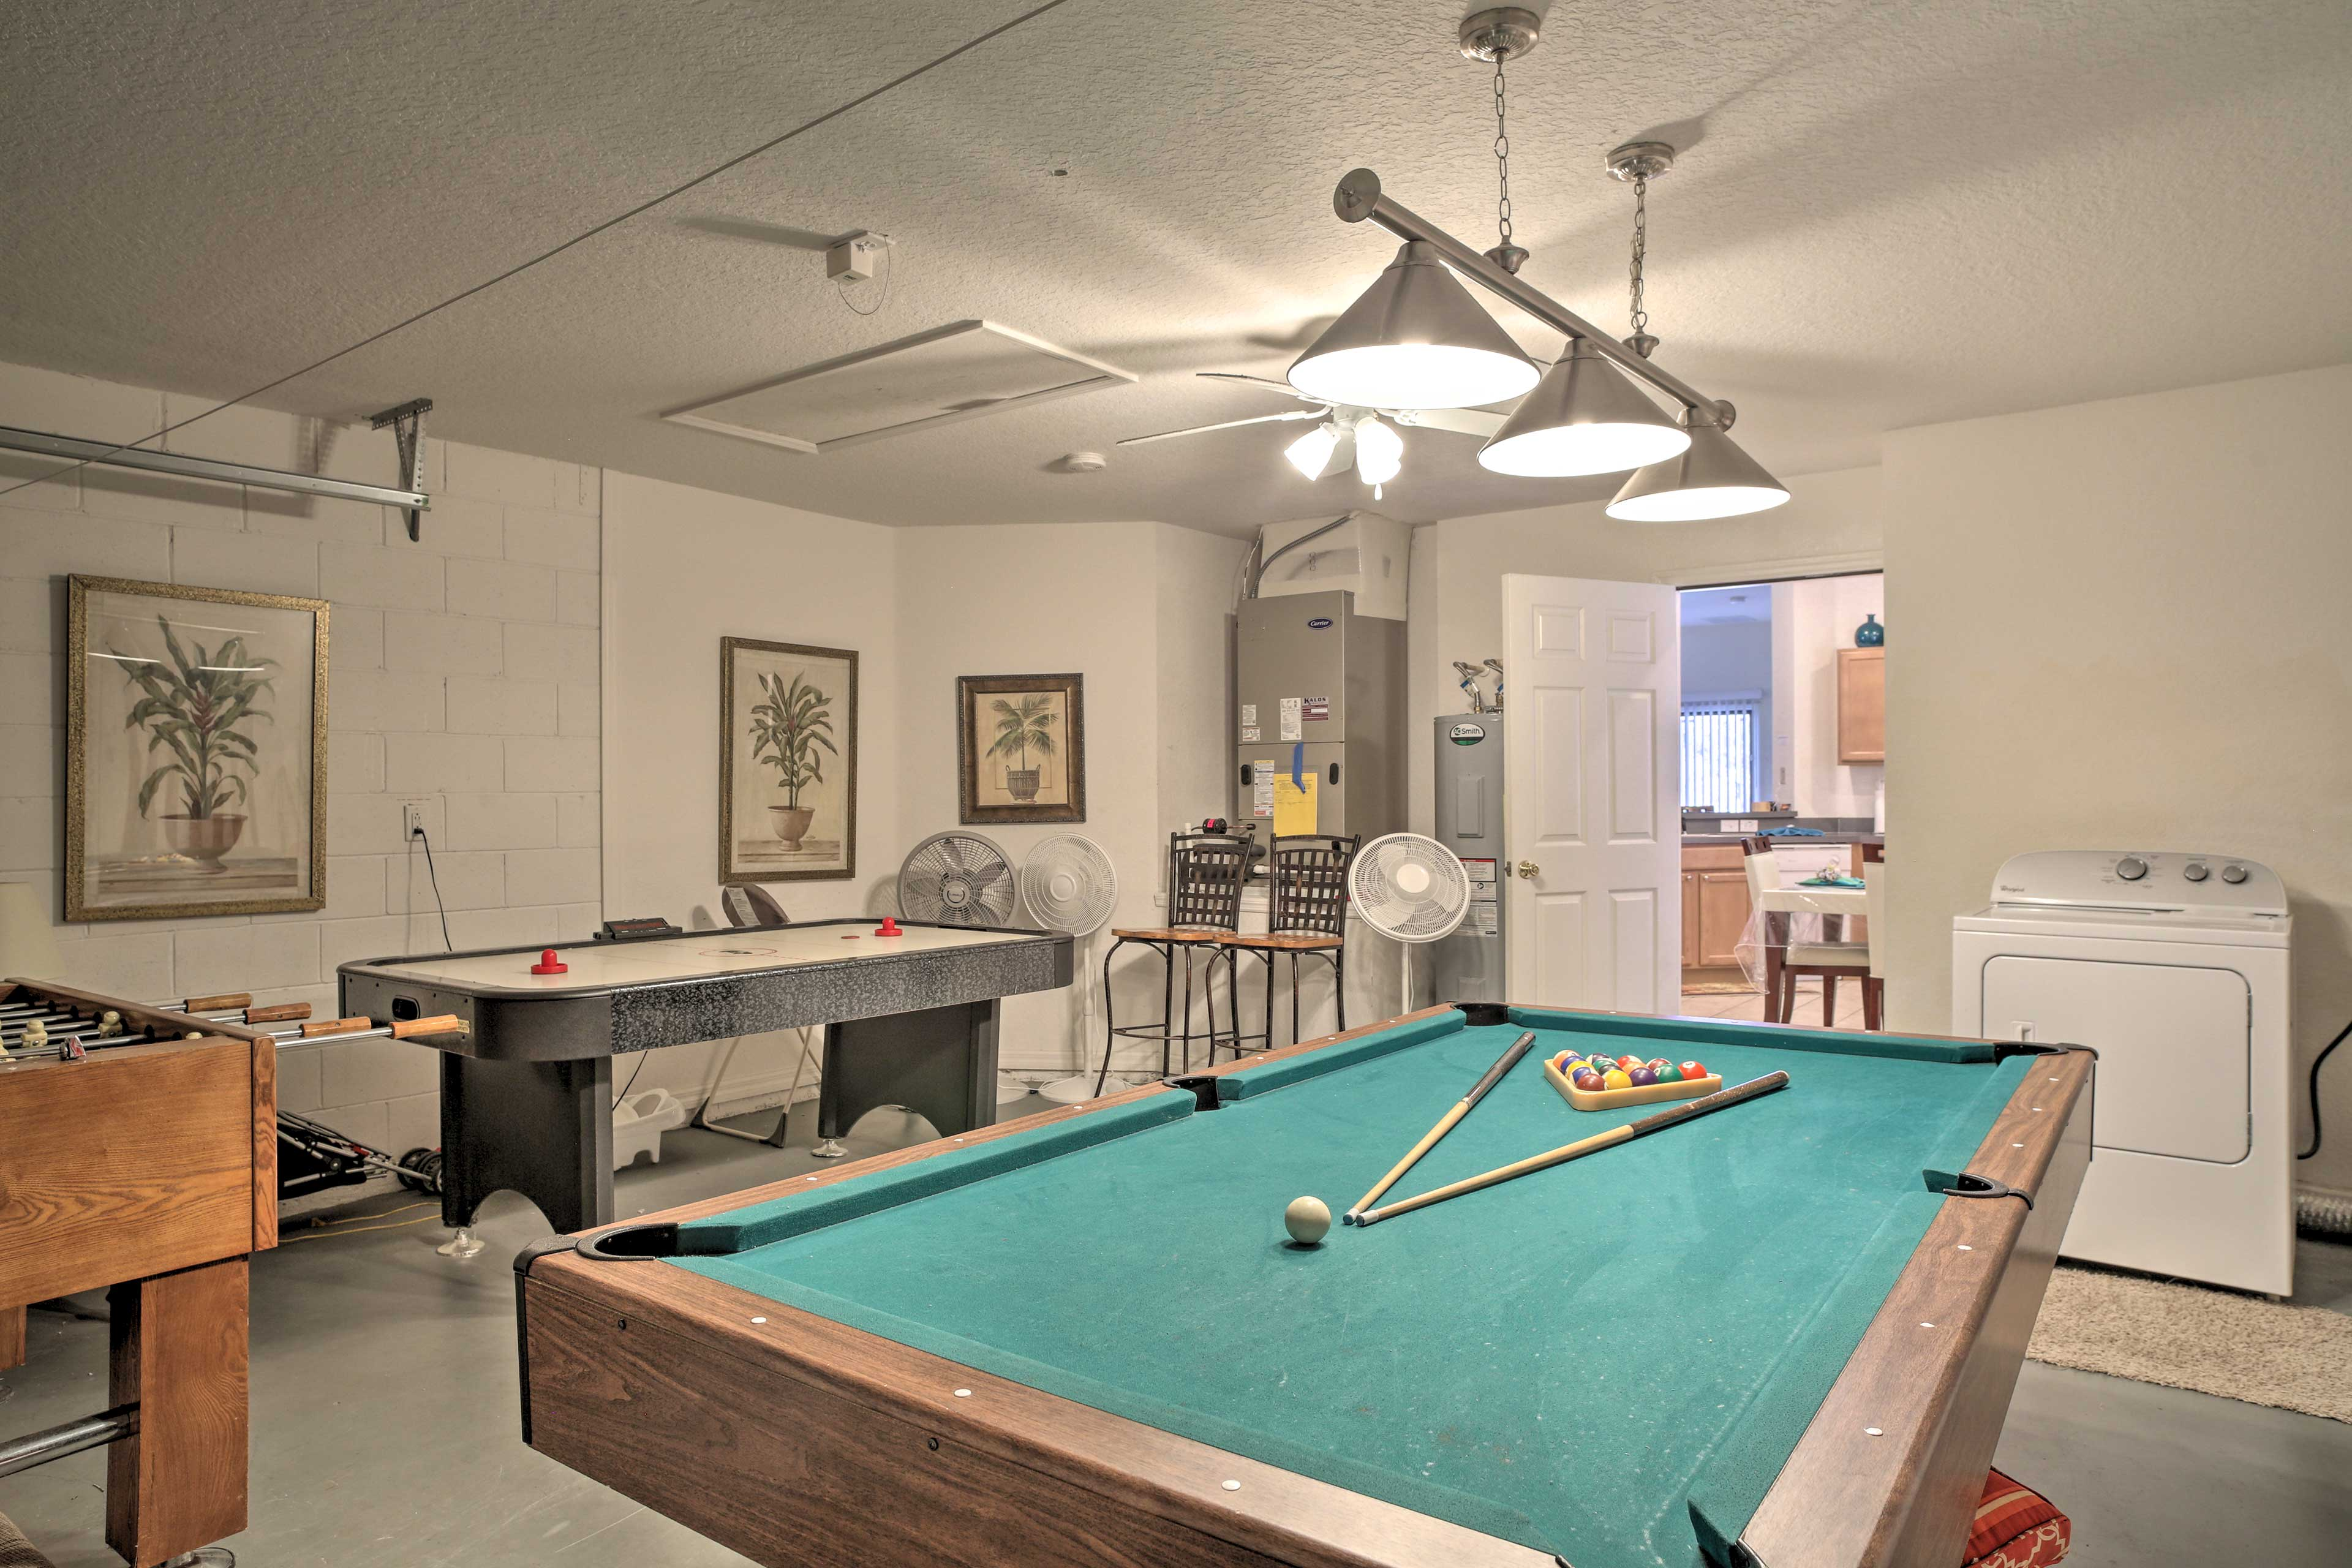 Bring out your competitive side in the garage game room!